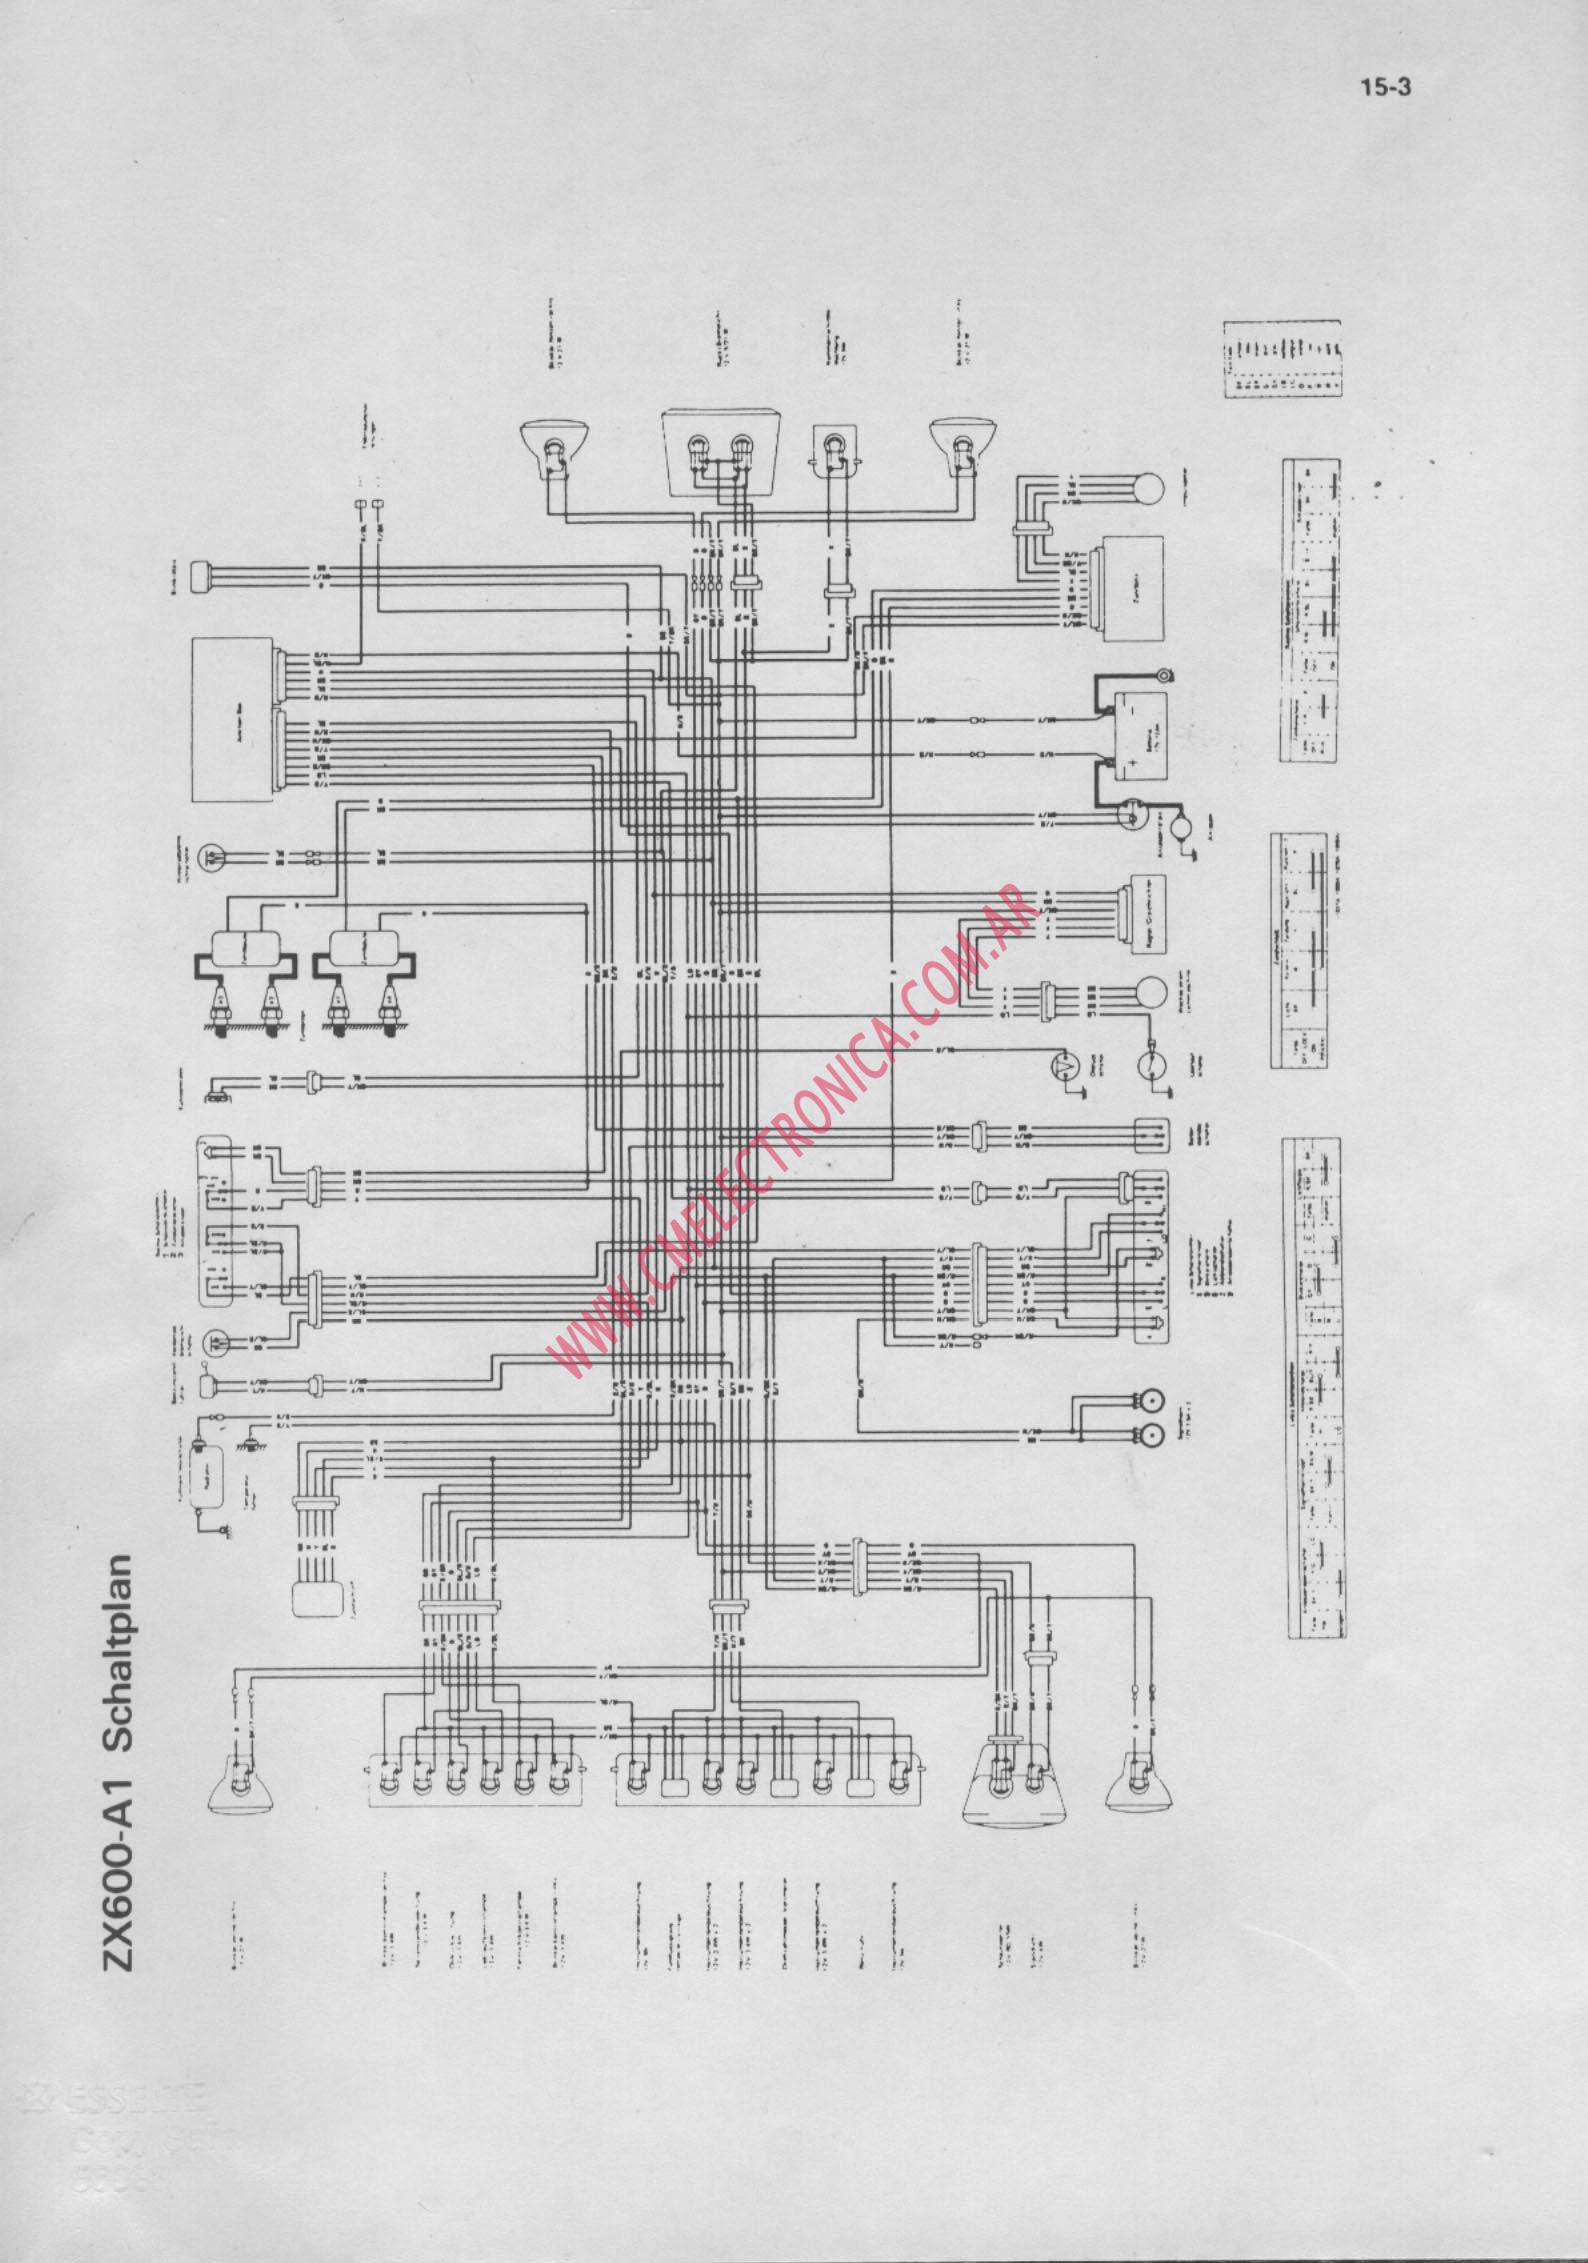 2007 Kawasaki Mule 600 Wiring Diagram Diagrams Schematics Schematic Ignition Get Free Image Accessories Electrical